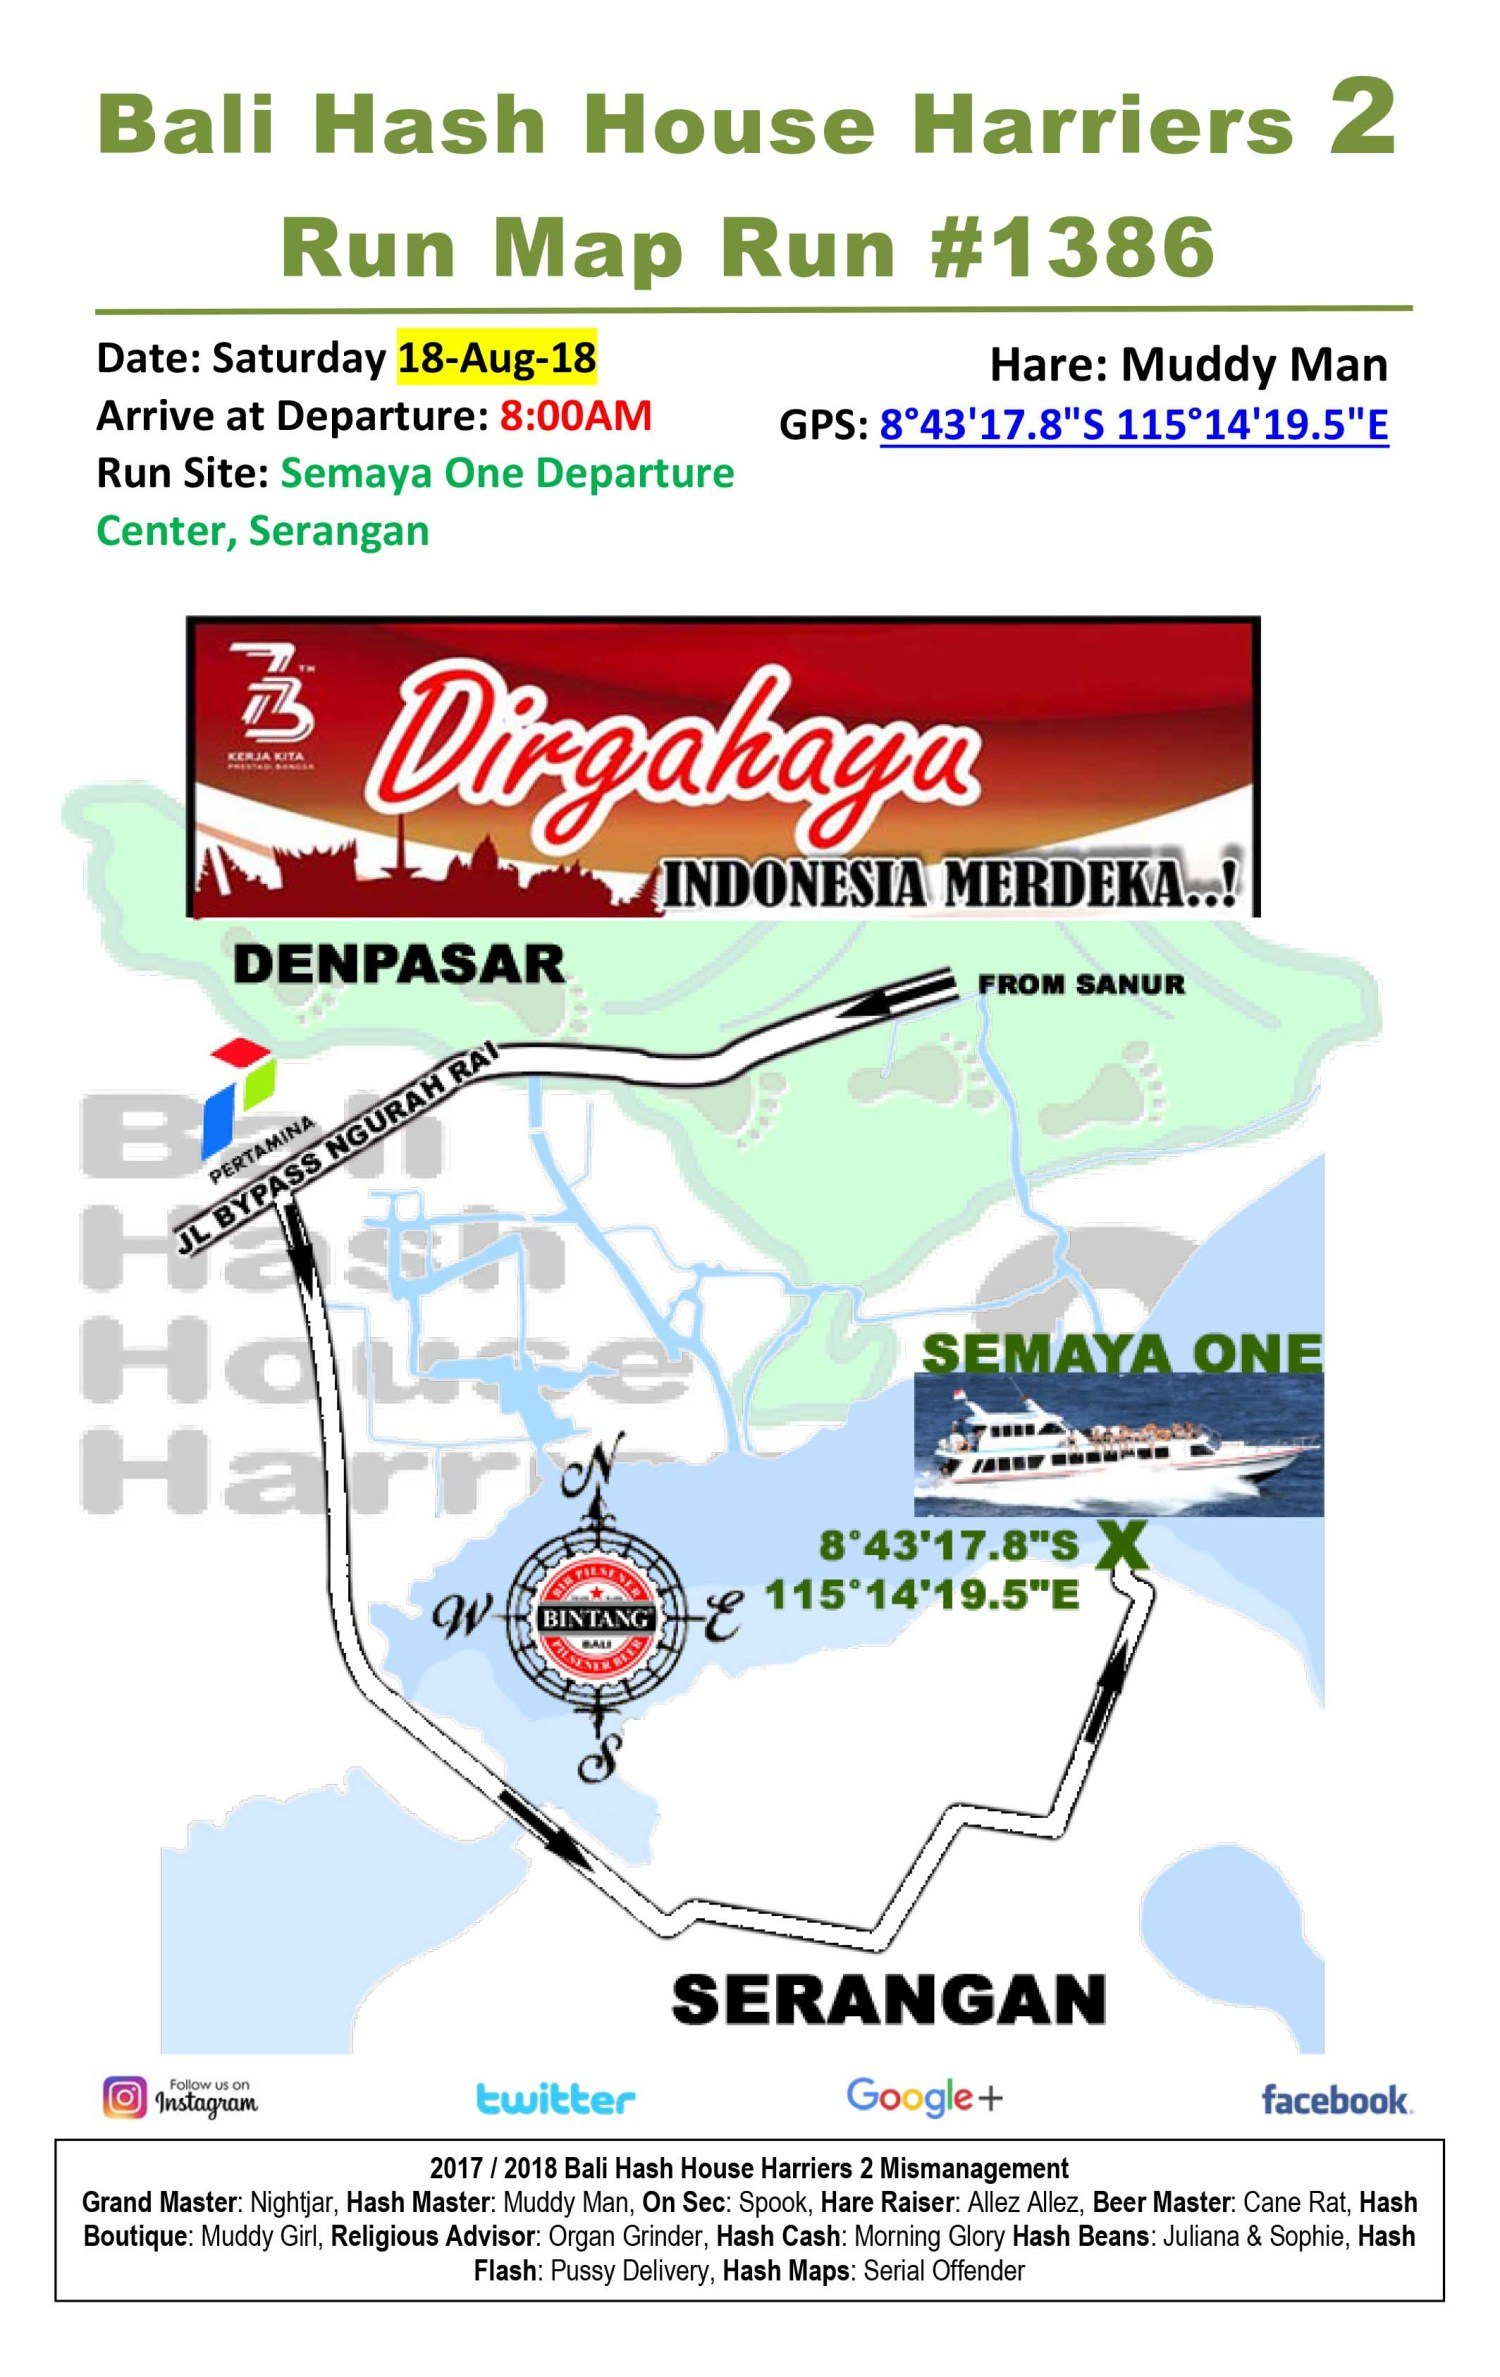 BHHH2 Run Map Run #1386 Merdeka Run Nusa Penida 18-Aug-18